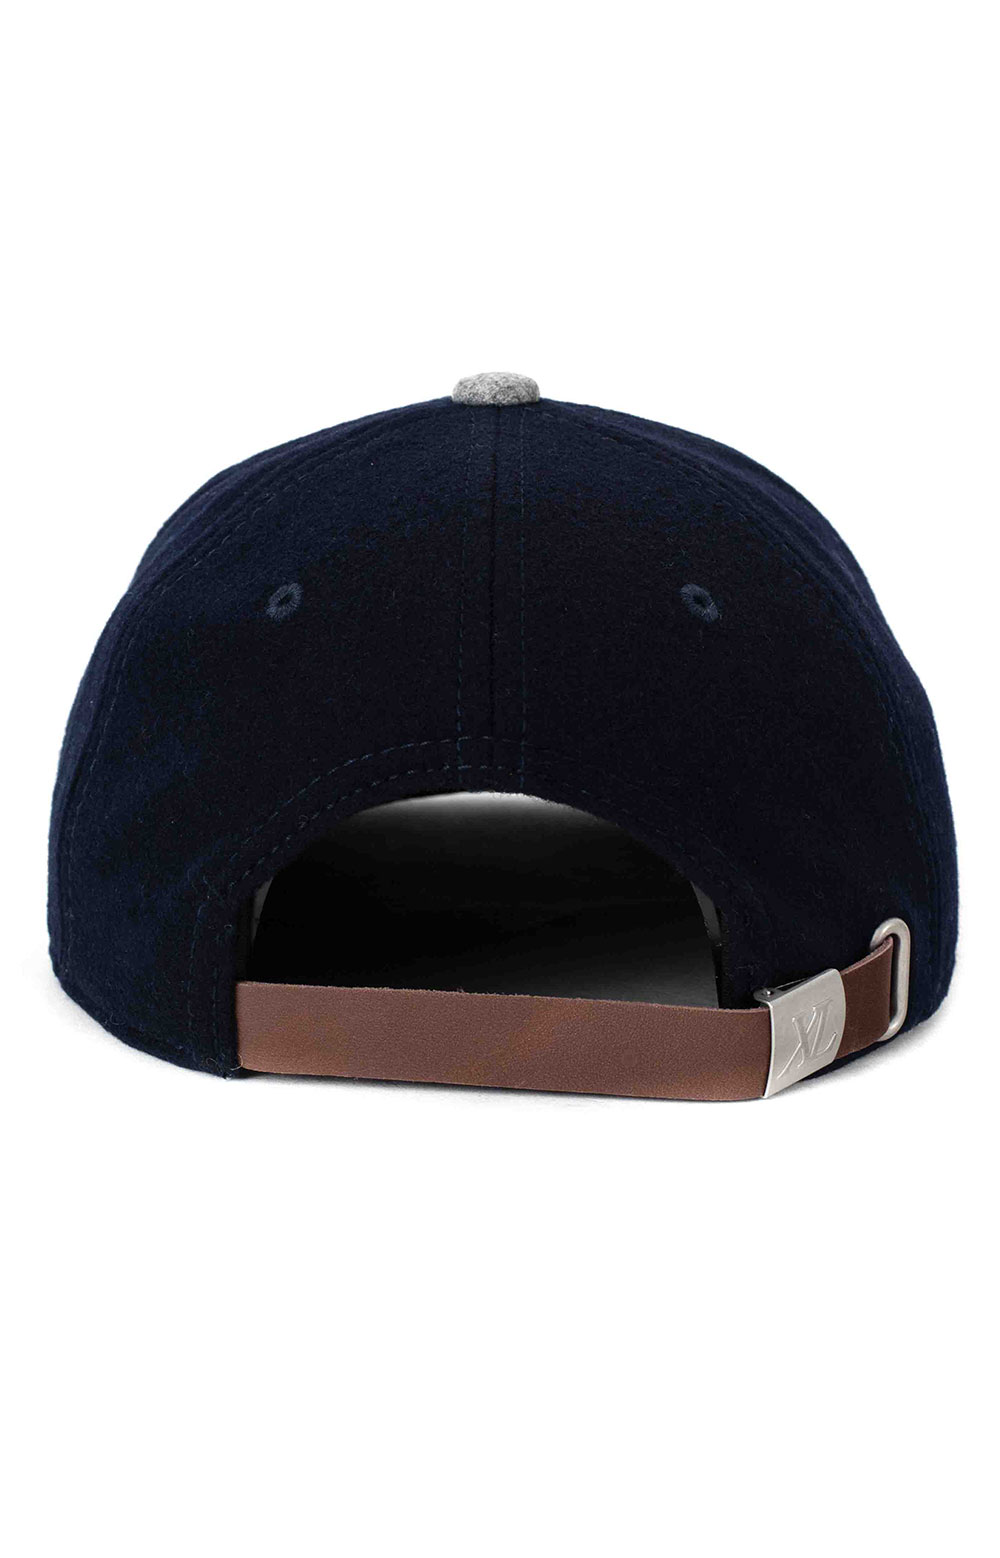 Patched Wool Cap - Navy 3